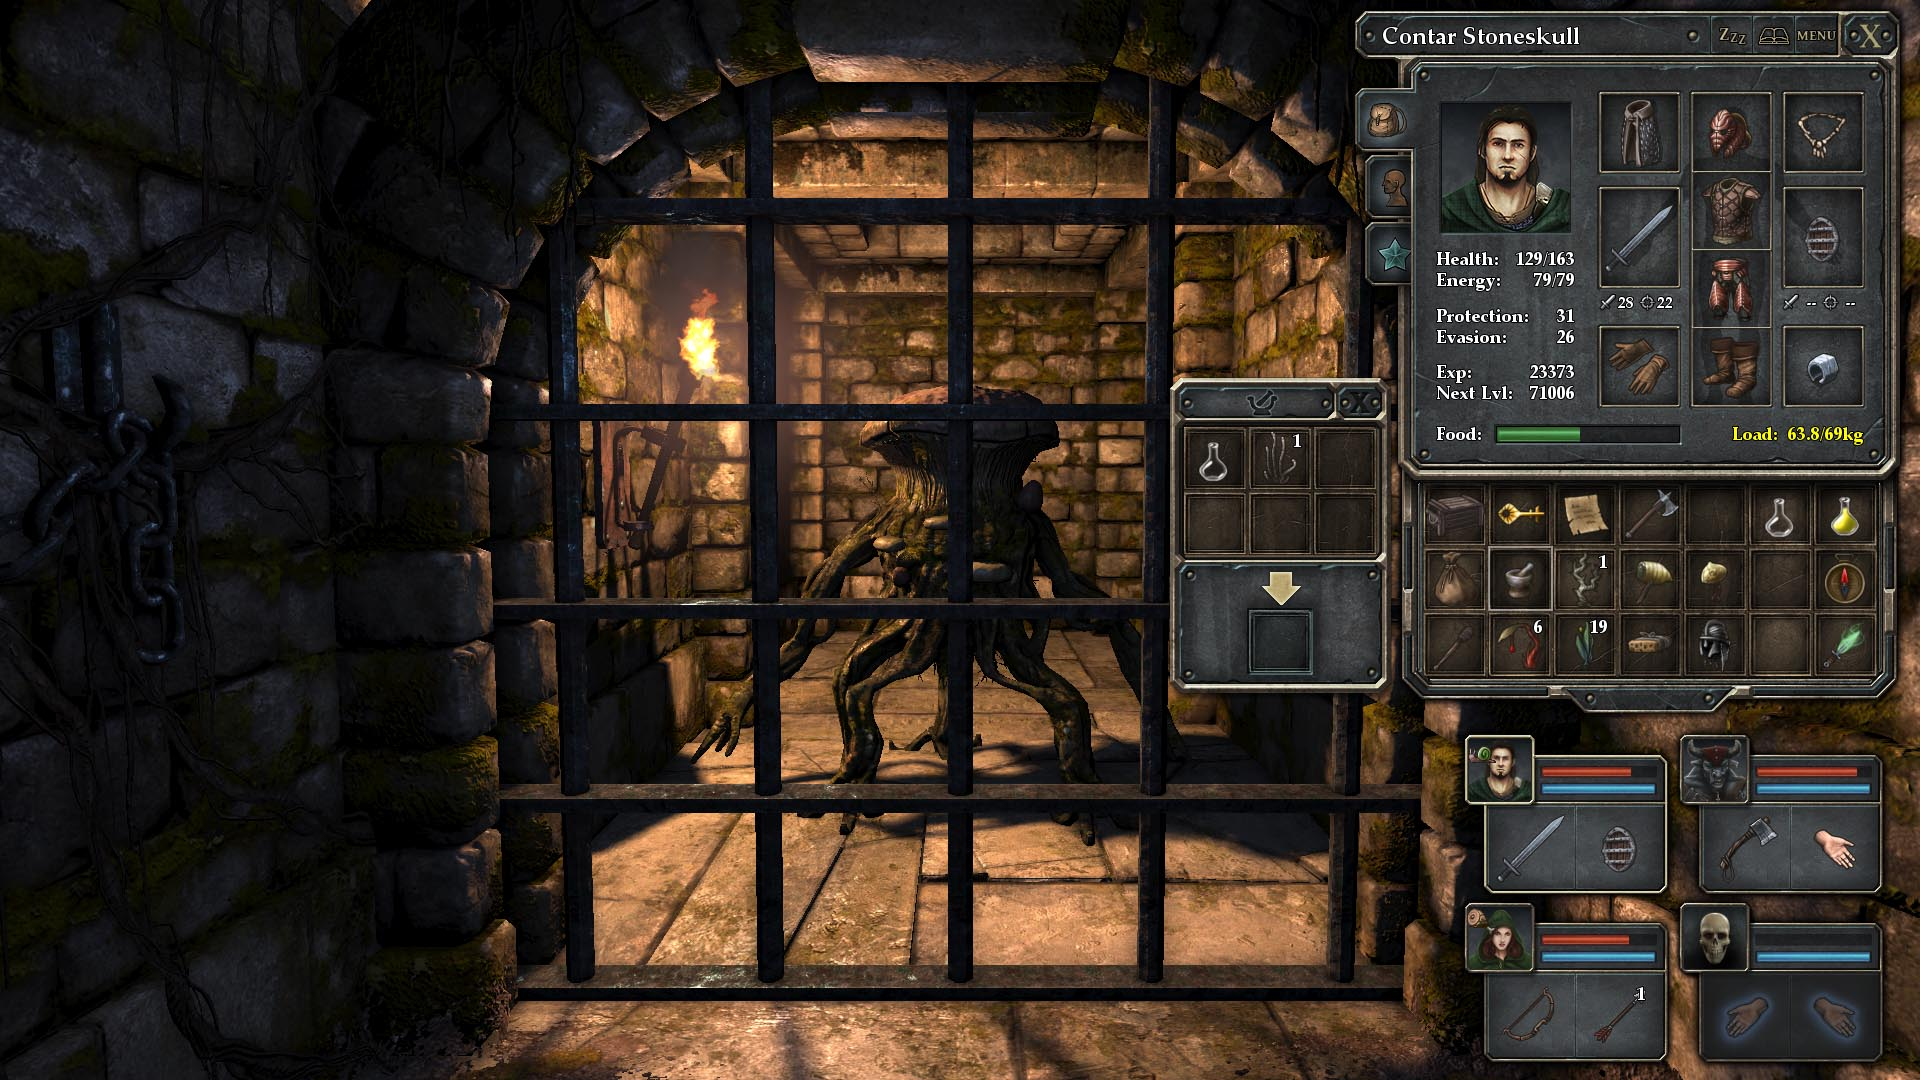 http://www.grimrock.net/wp-content/uploads/2012/03/Legend_of_Grimrock_screenshot_02.jpg